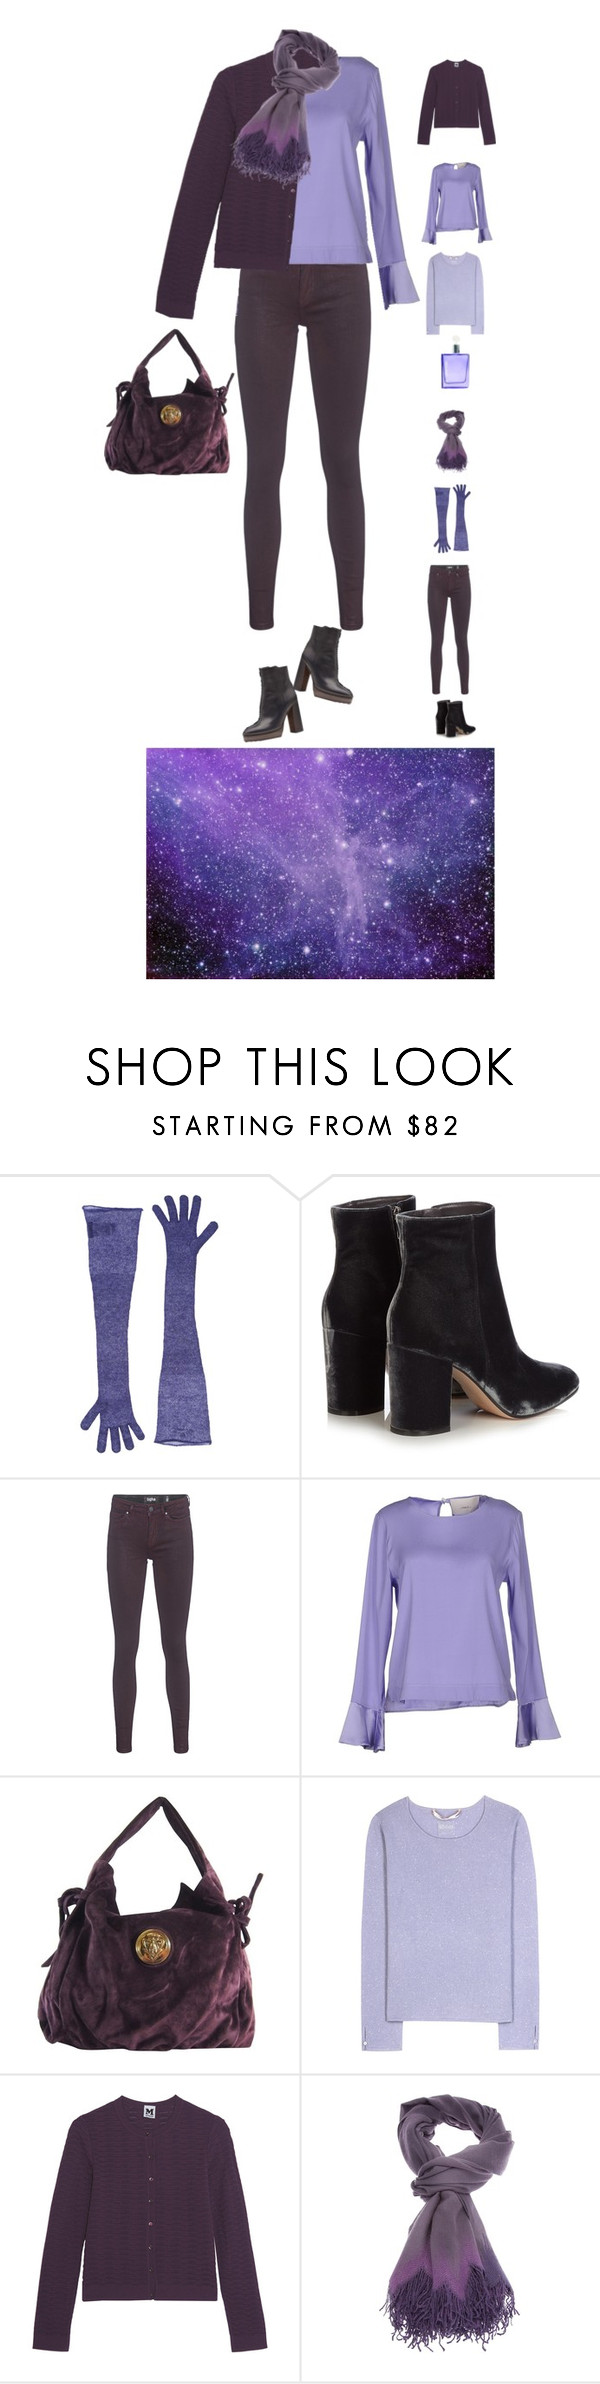 """""""What to wear today?"""" by pure-emotion-by-violetta on Polyvore featuring Mode, Twin-Set, Gianvito Rossi, TIGHA, ..,MERCI, Gucci, 81hours, M Missoni, Bottega Veneta und Brunello Cucinelli"""